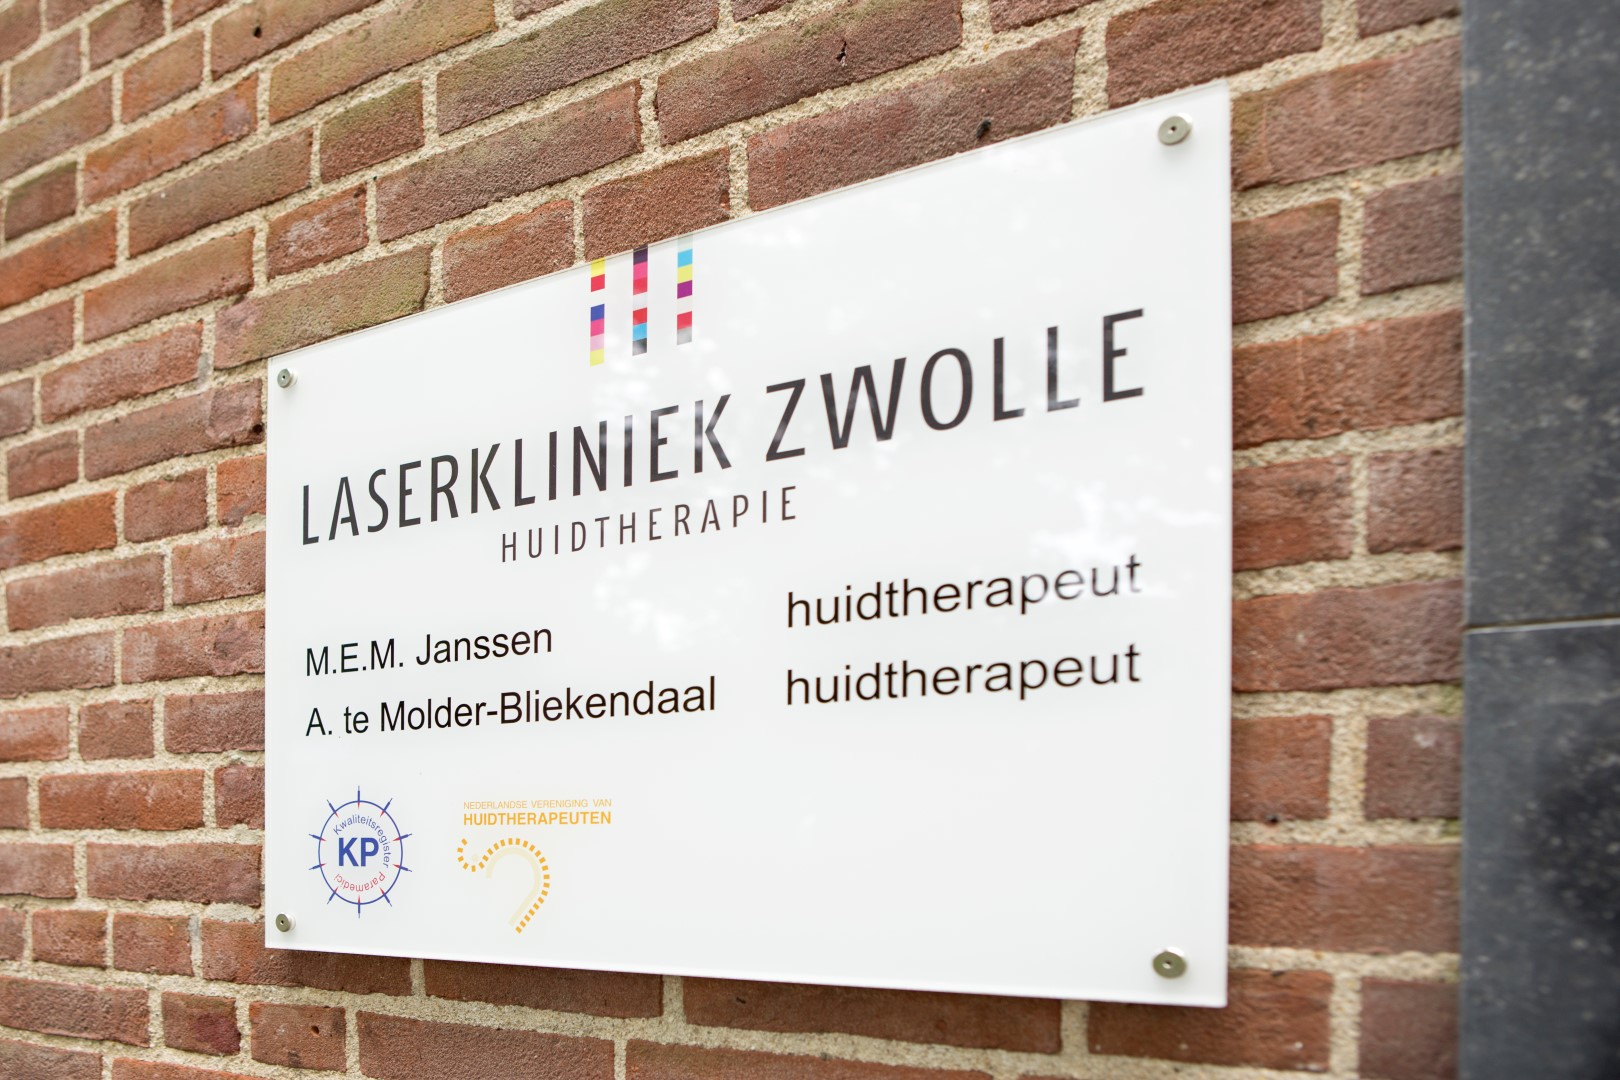 Corona update: Laserkliniek Zwolle is open